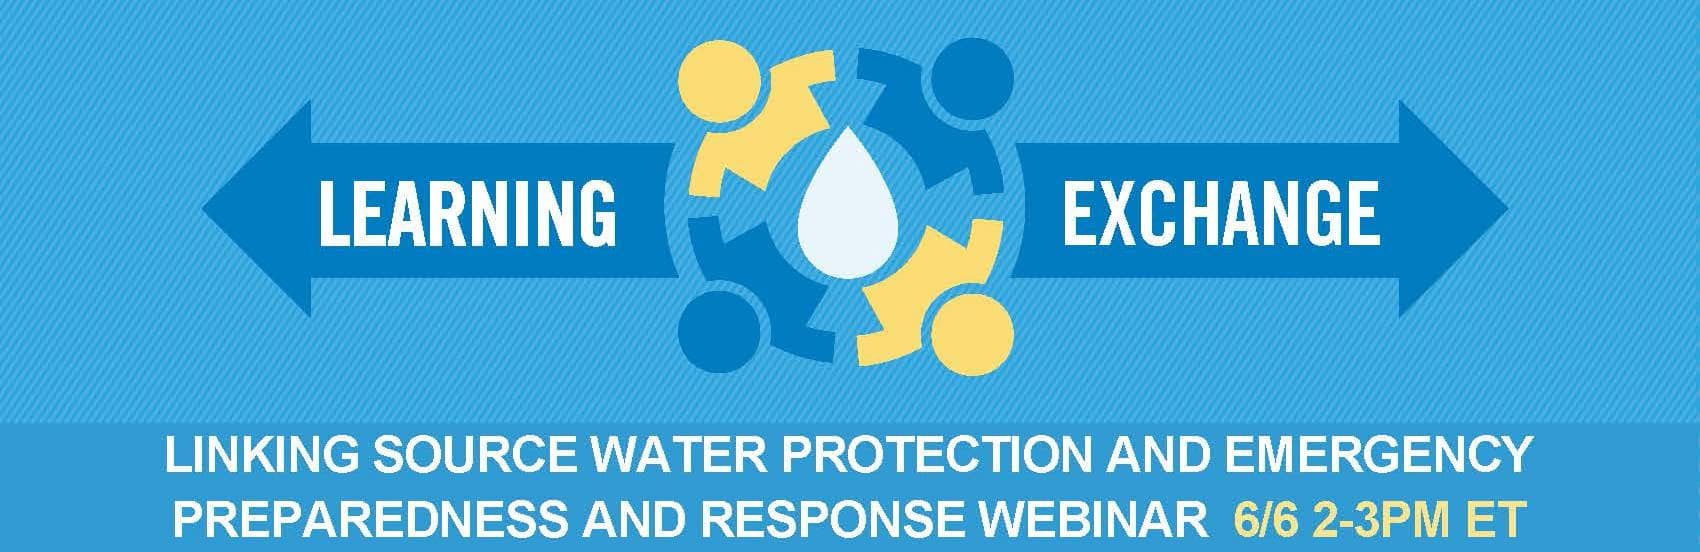 Source Water Collaborative Learning Exchange Webinar Series: Linking Source Water Protection and Emergency Preparedness and Response